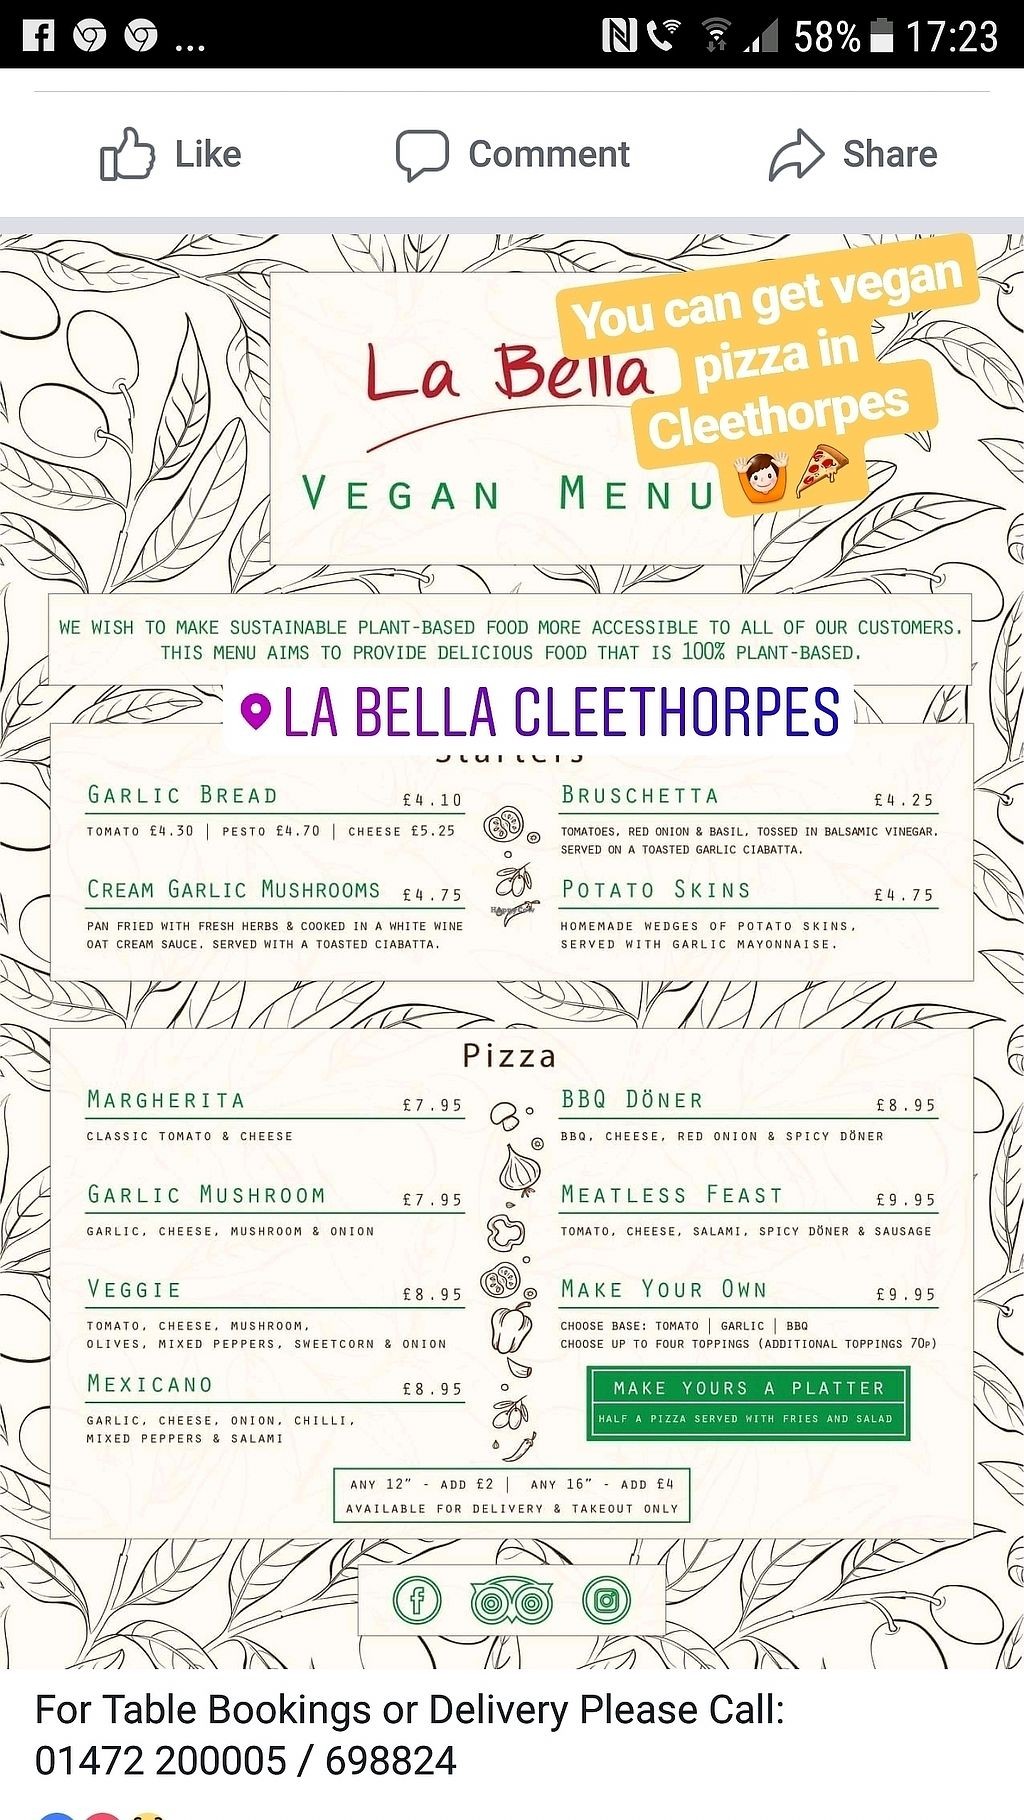 """Photo of La Bella  by <a href=""""/members/profile/KarlAyers"""">KarlAyers</a> <br/>vegan menu <br/> February 19, 2018  - <a href='/contact/abuse/image/109624/361104'>Report</a>"""